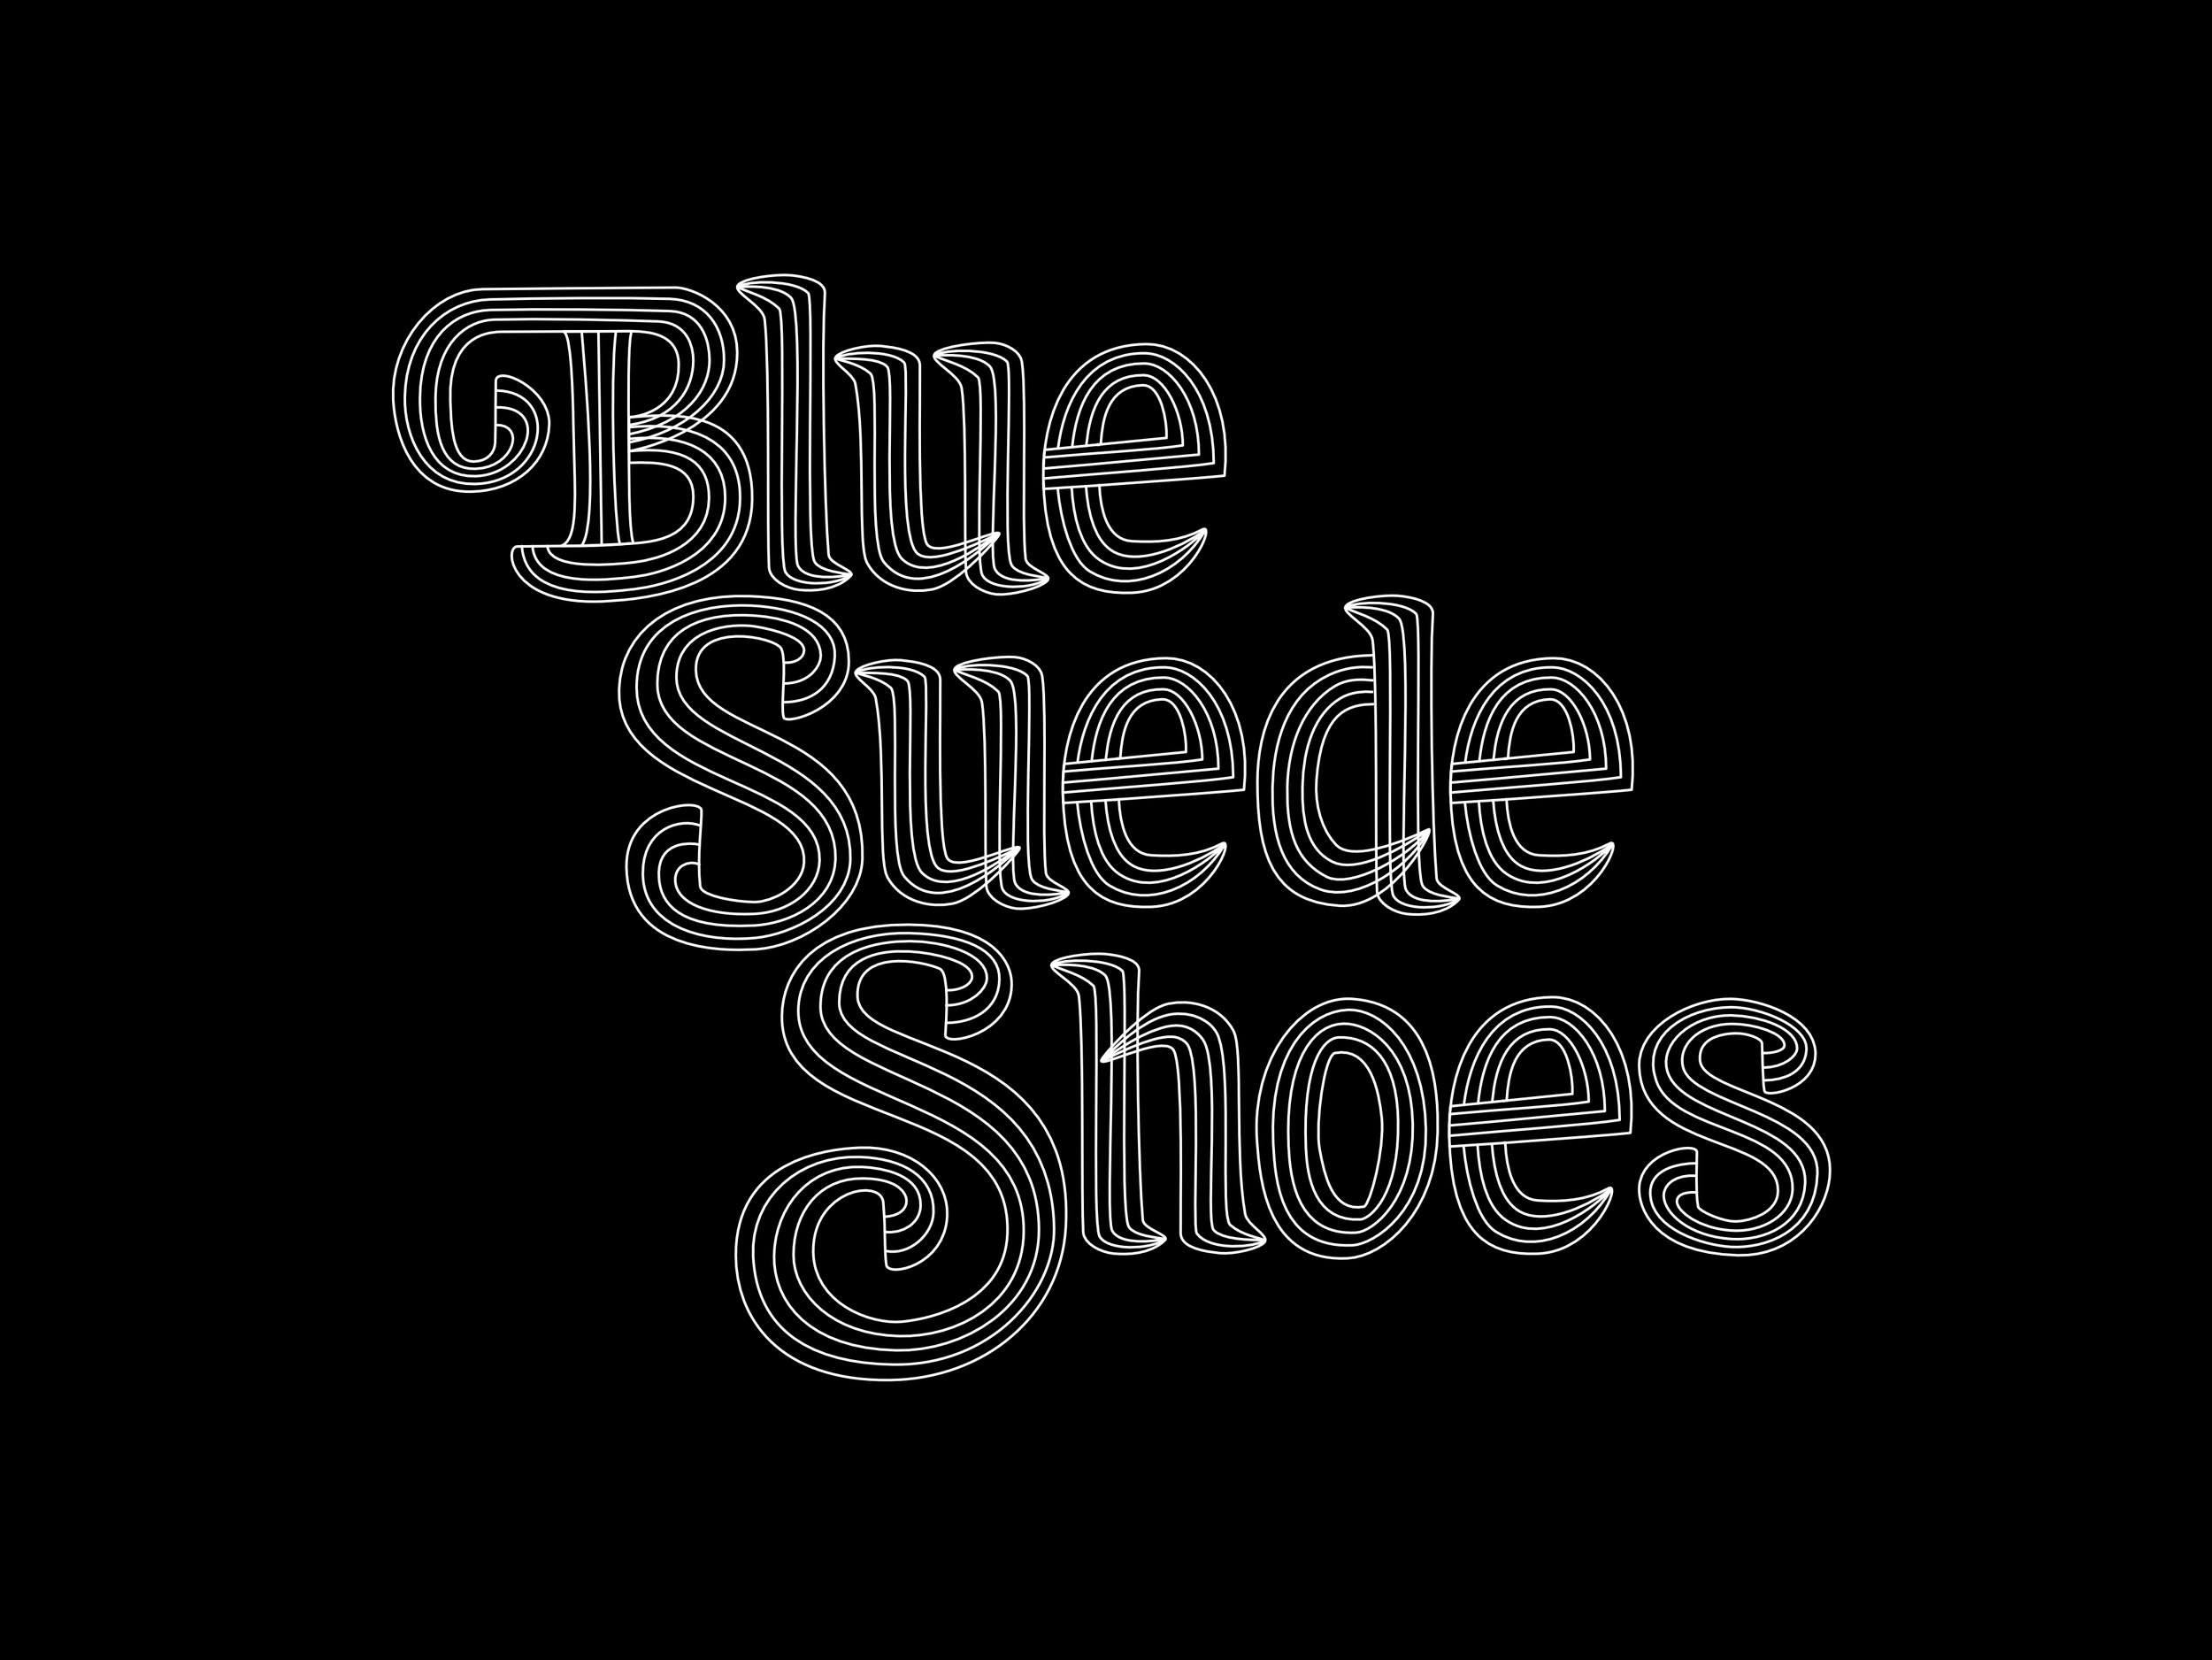 blue suede shoes vector - bw.jpg